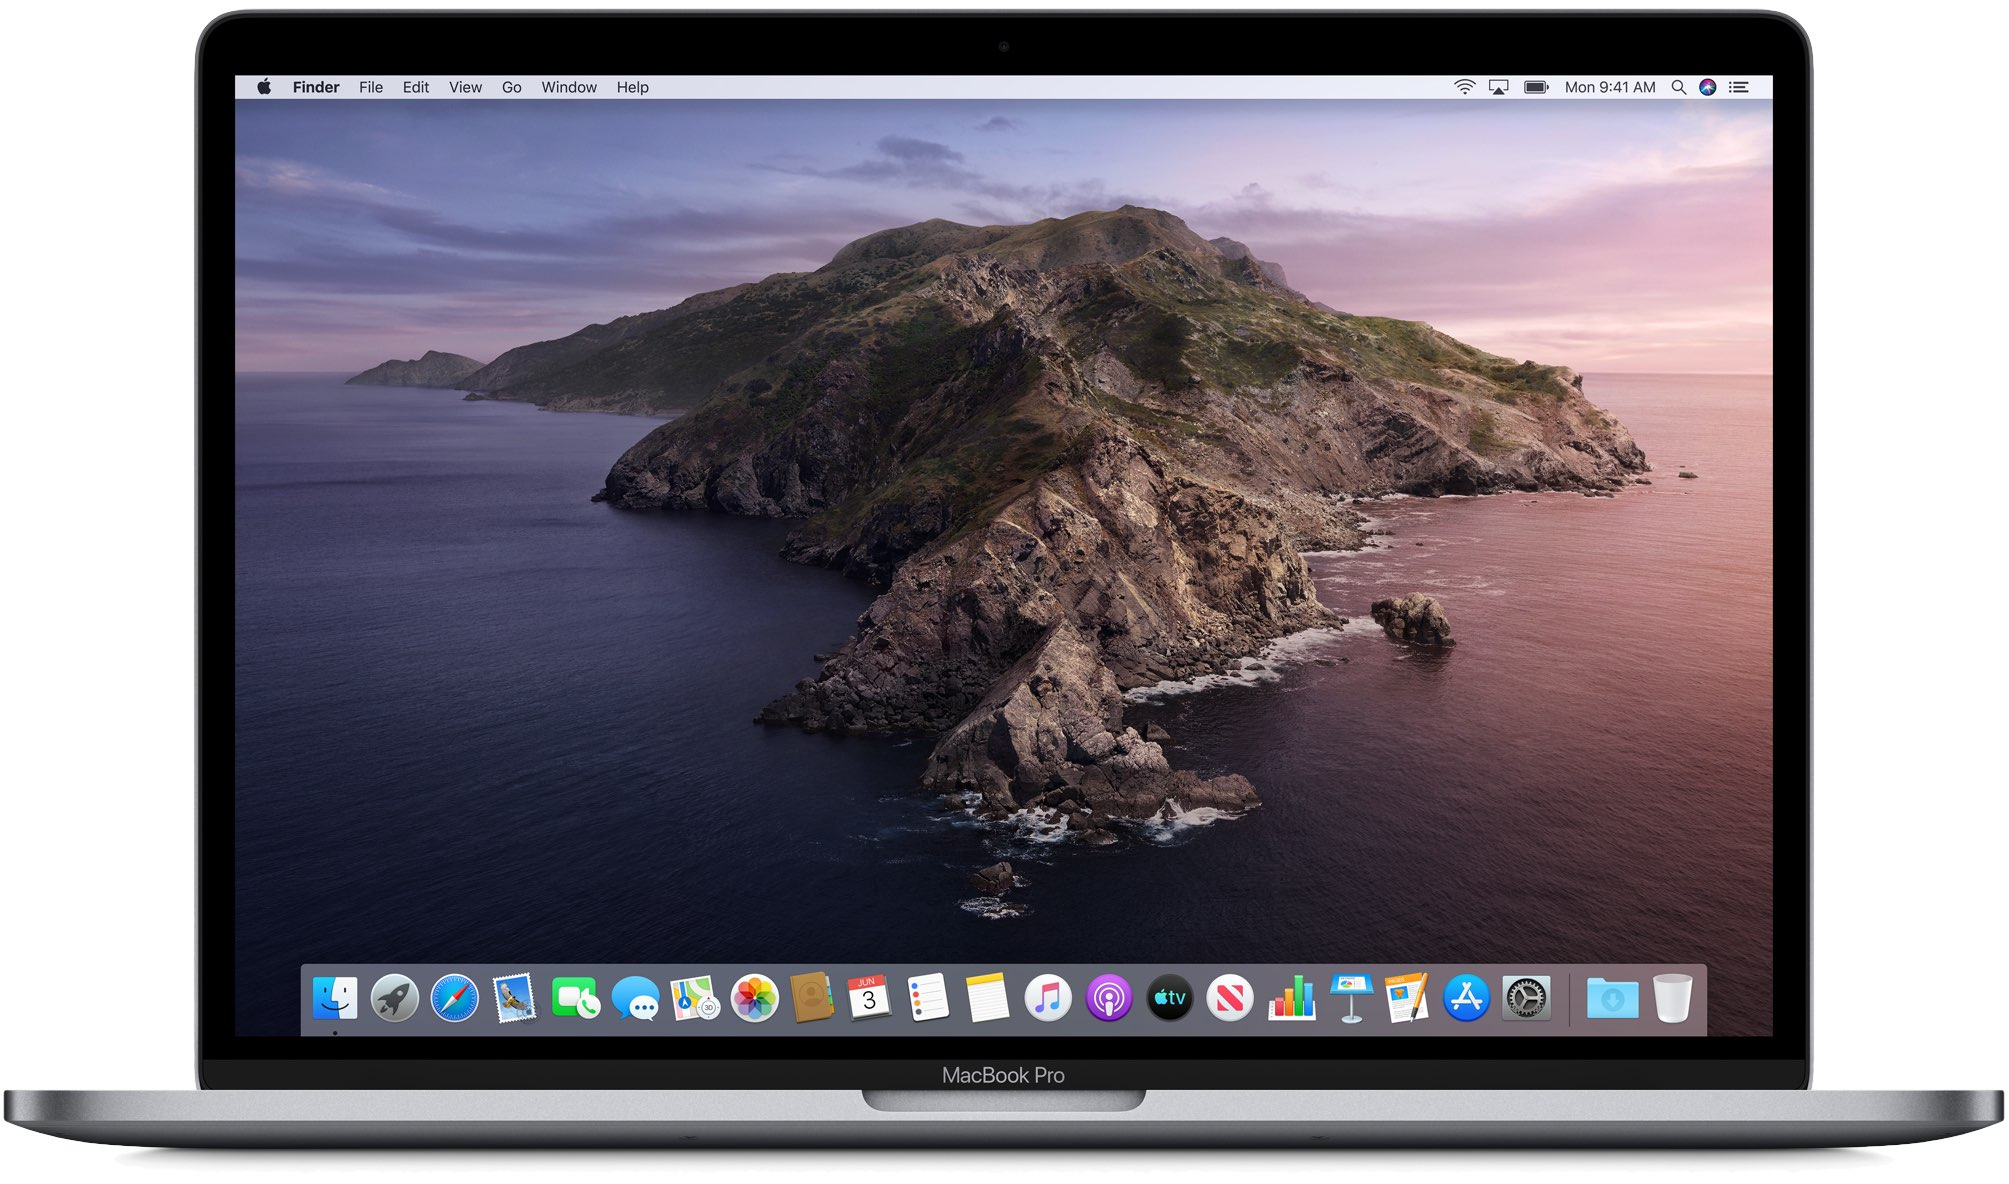 How to sync iPhone via the Finder with your Mac in macOS Catalina 10.15